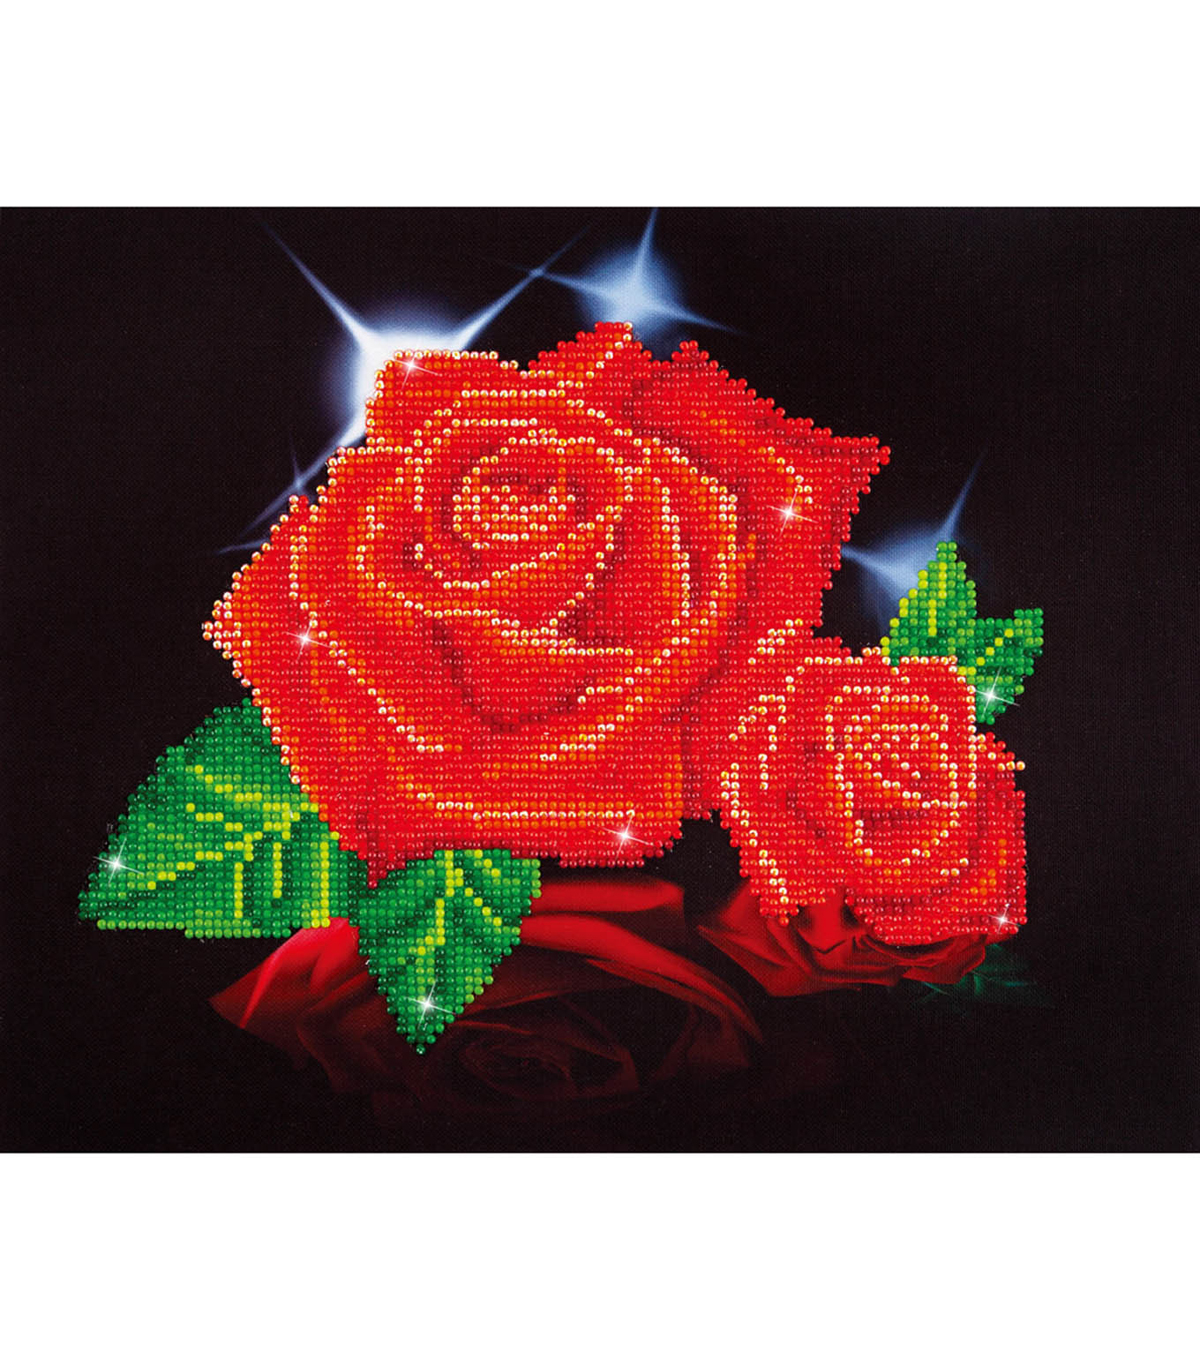 Diamond Embroidery Facet Art Kit 17\u0022X13.7\u0022-Red Rose Sparkle